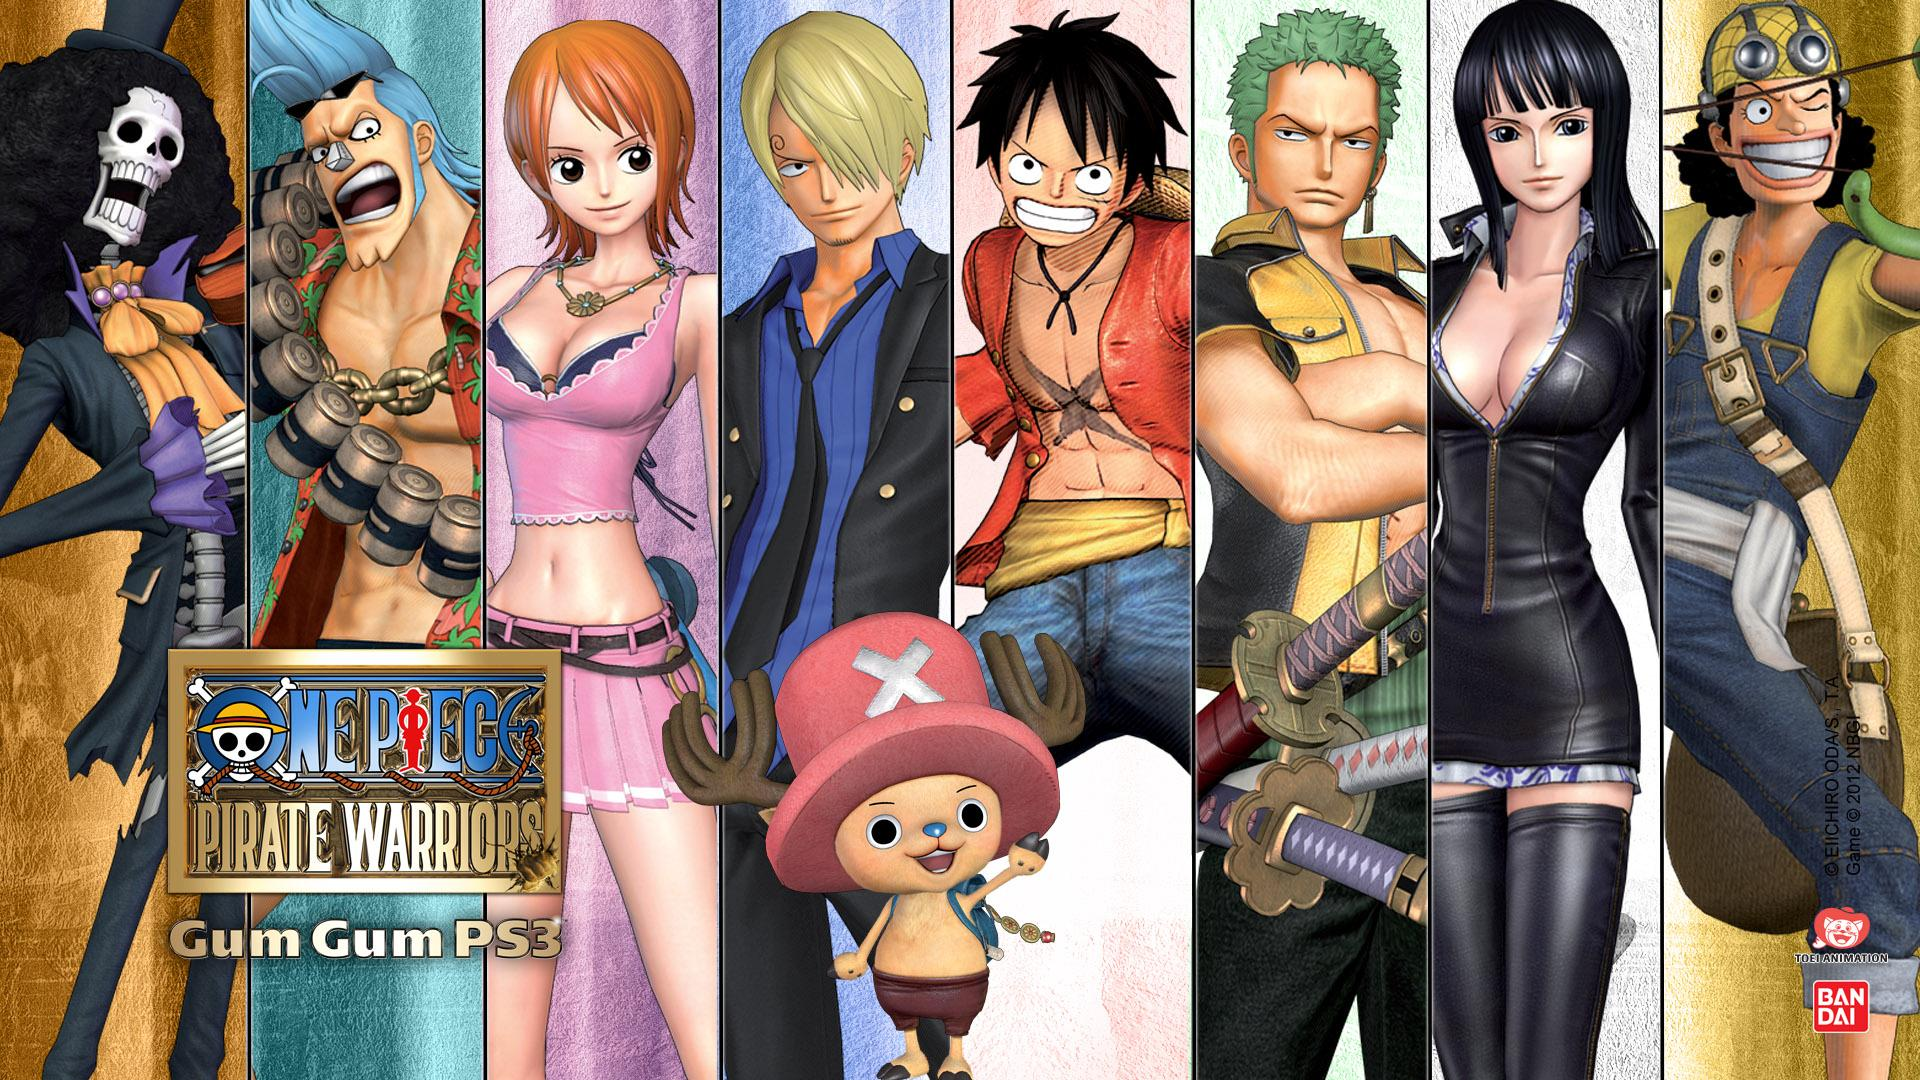 Personnages de One Piece et de Mew Mew Power